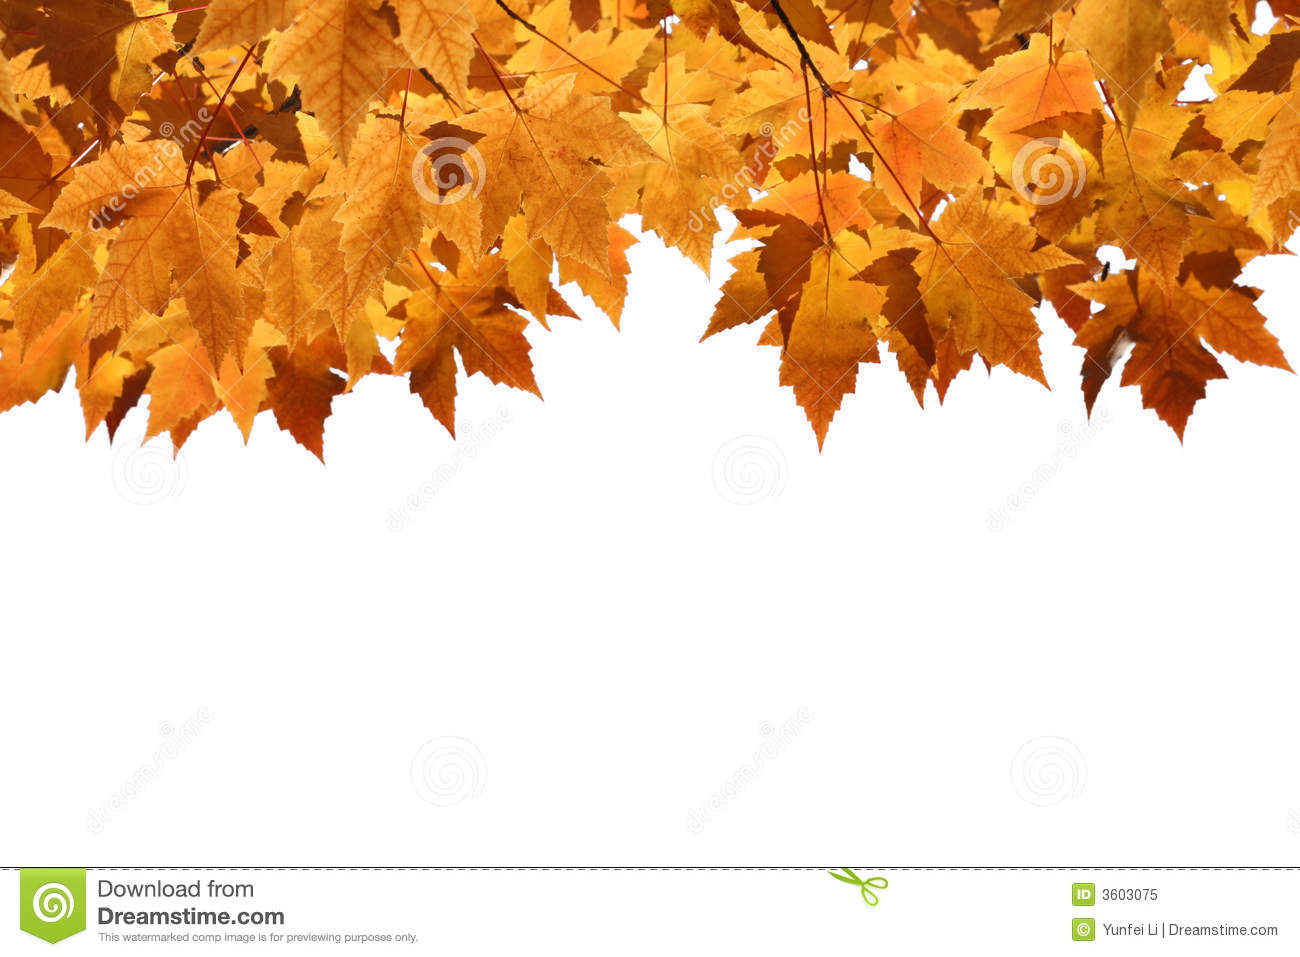 Wallpaper Leaves Falling Fall Leaves Blank Background Stock Image Image Of Blue